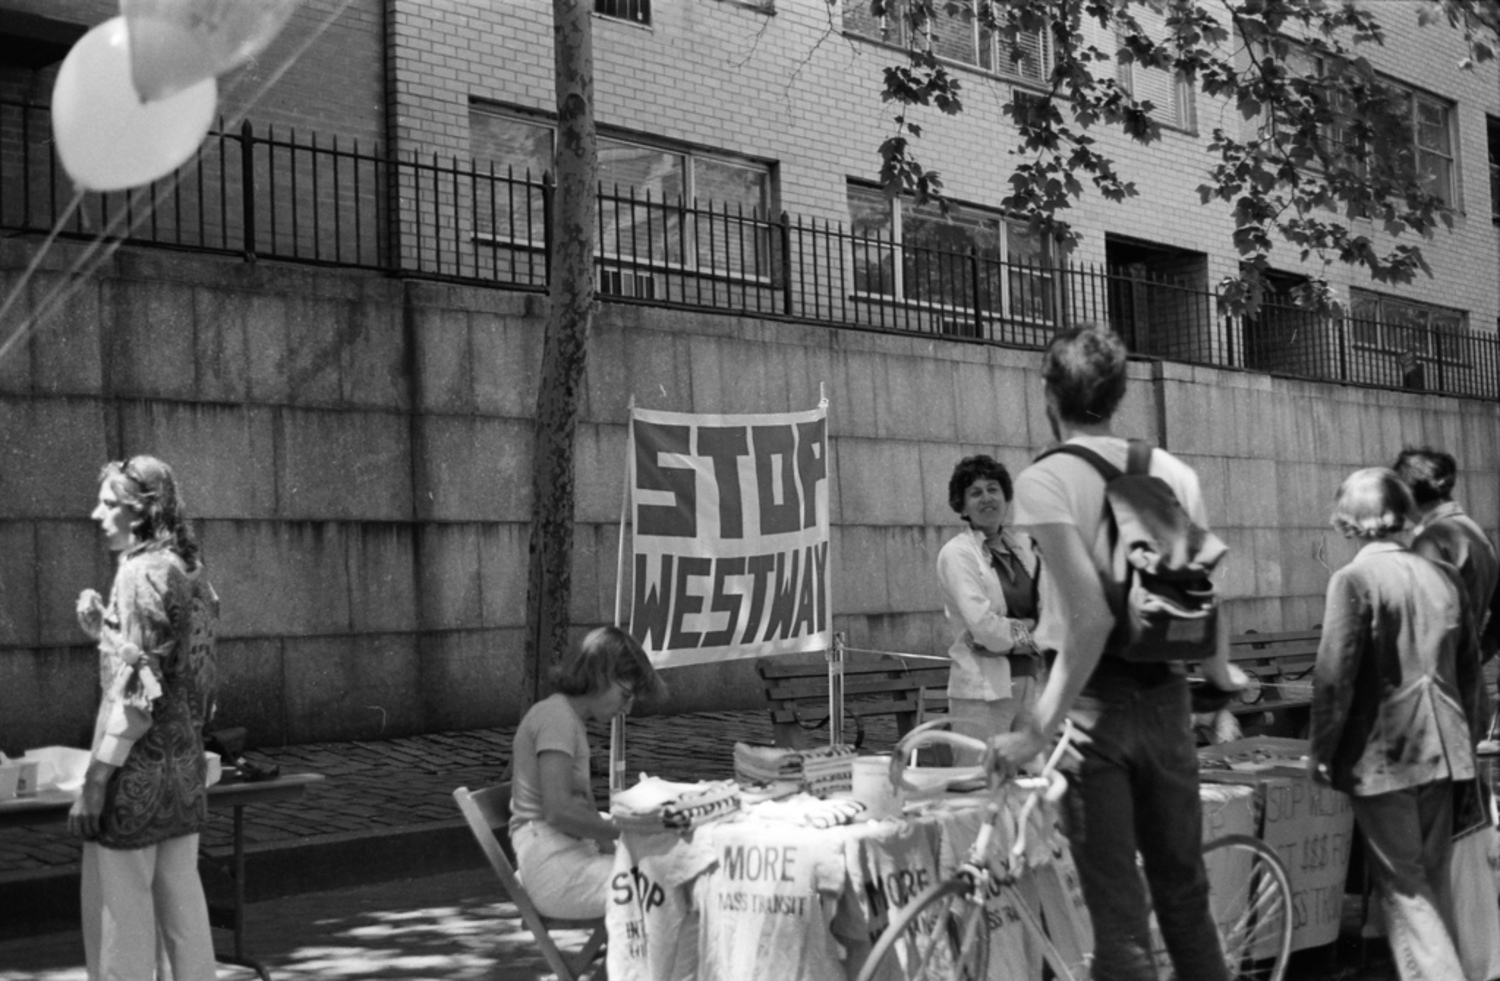 People demonstrating against the Westway highway project, New York City, July 6, 1977